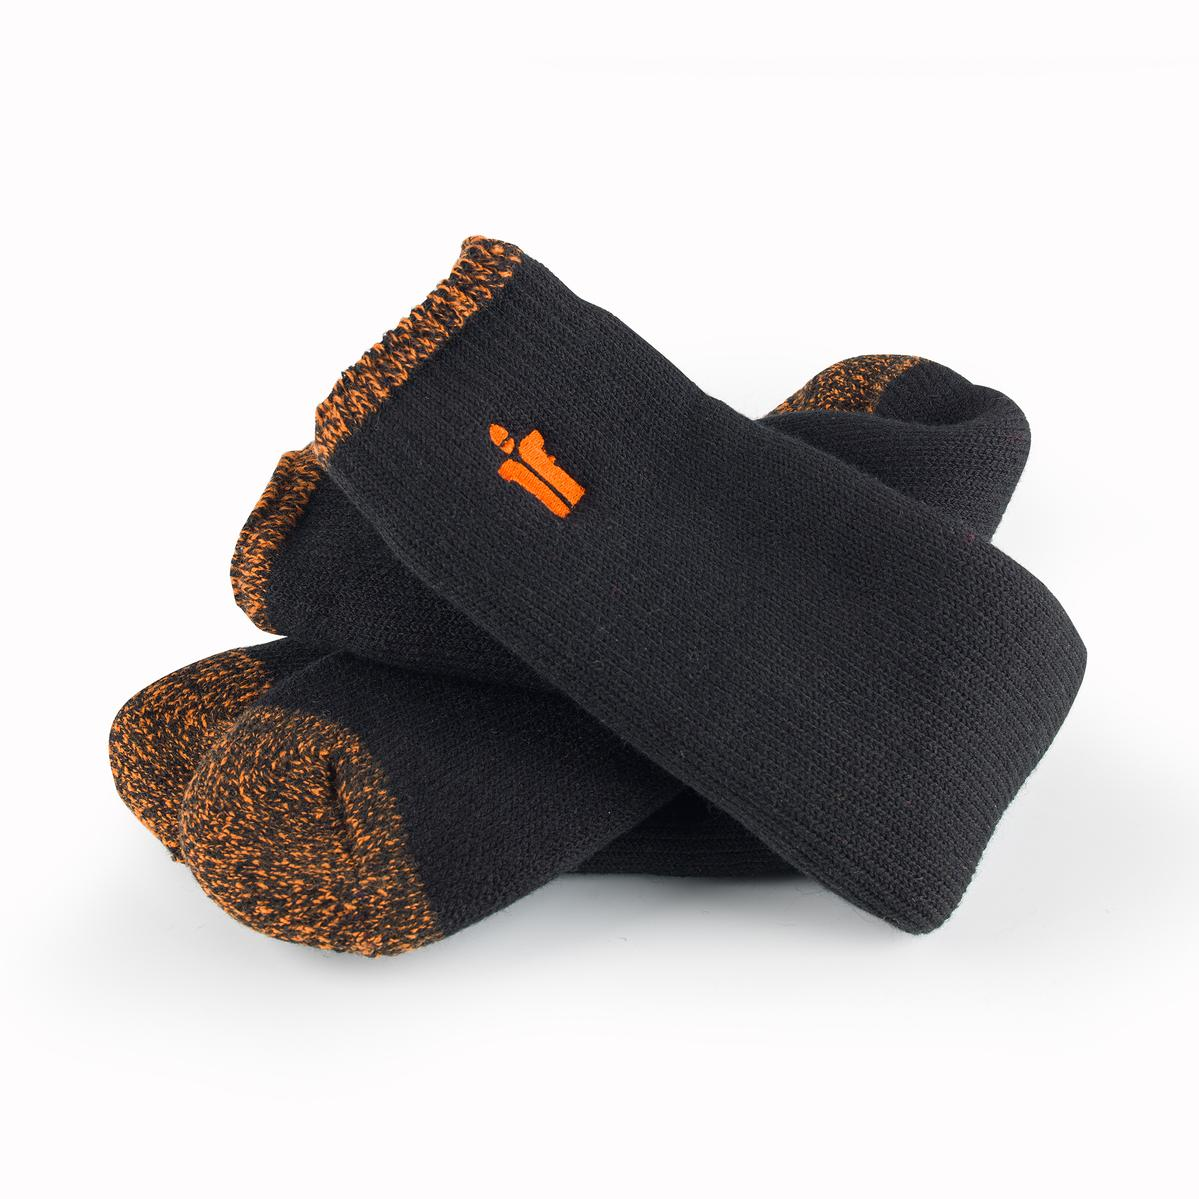 Scruffs Thermal Socks Sz 7-12